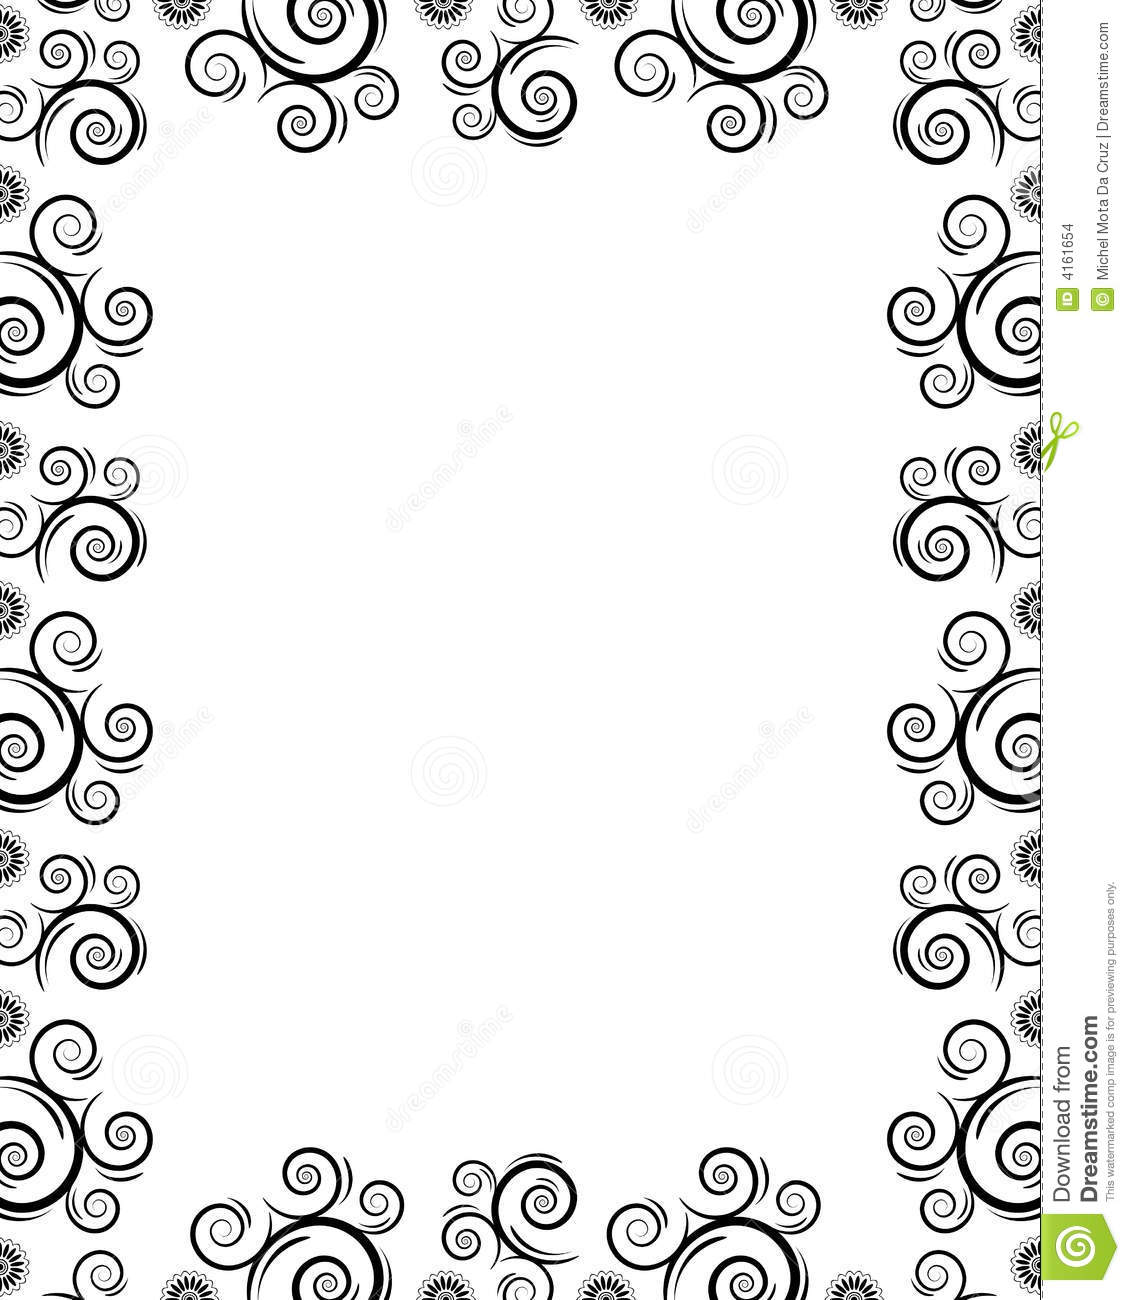 borderlines clipart